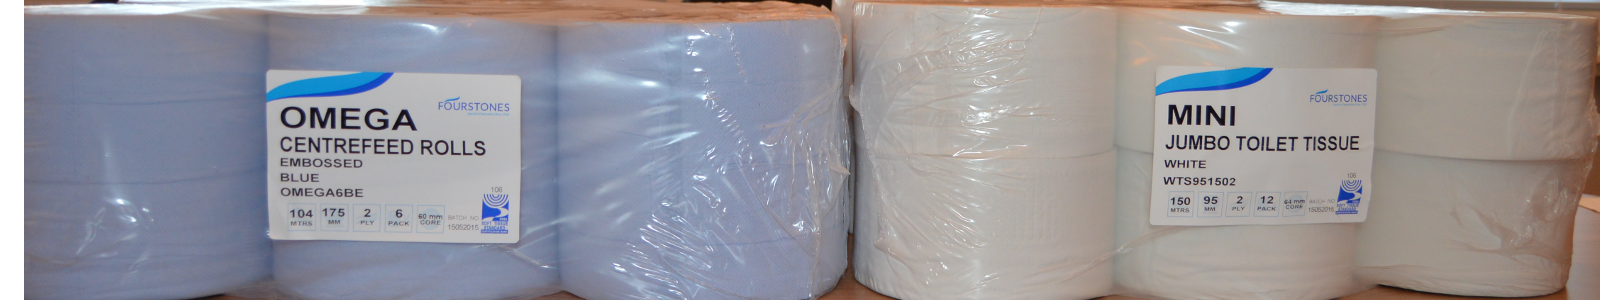 Optional labels on a blue centrefeed and mini jumbo toilet roll product.